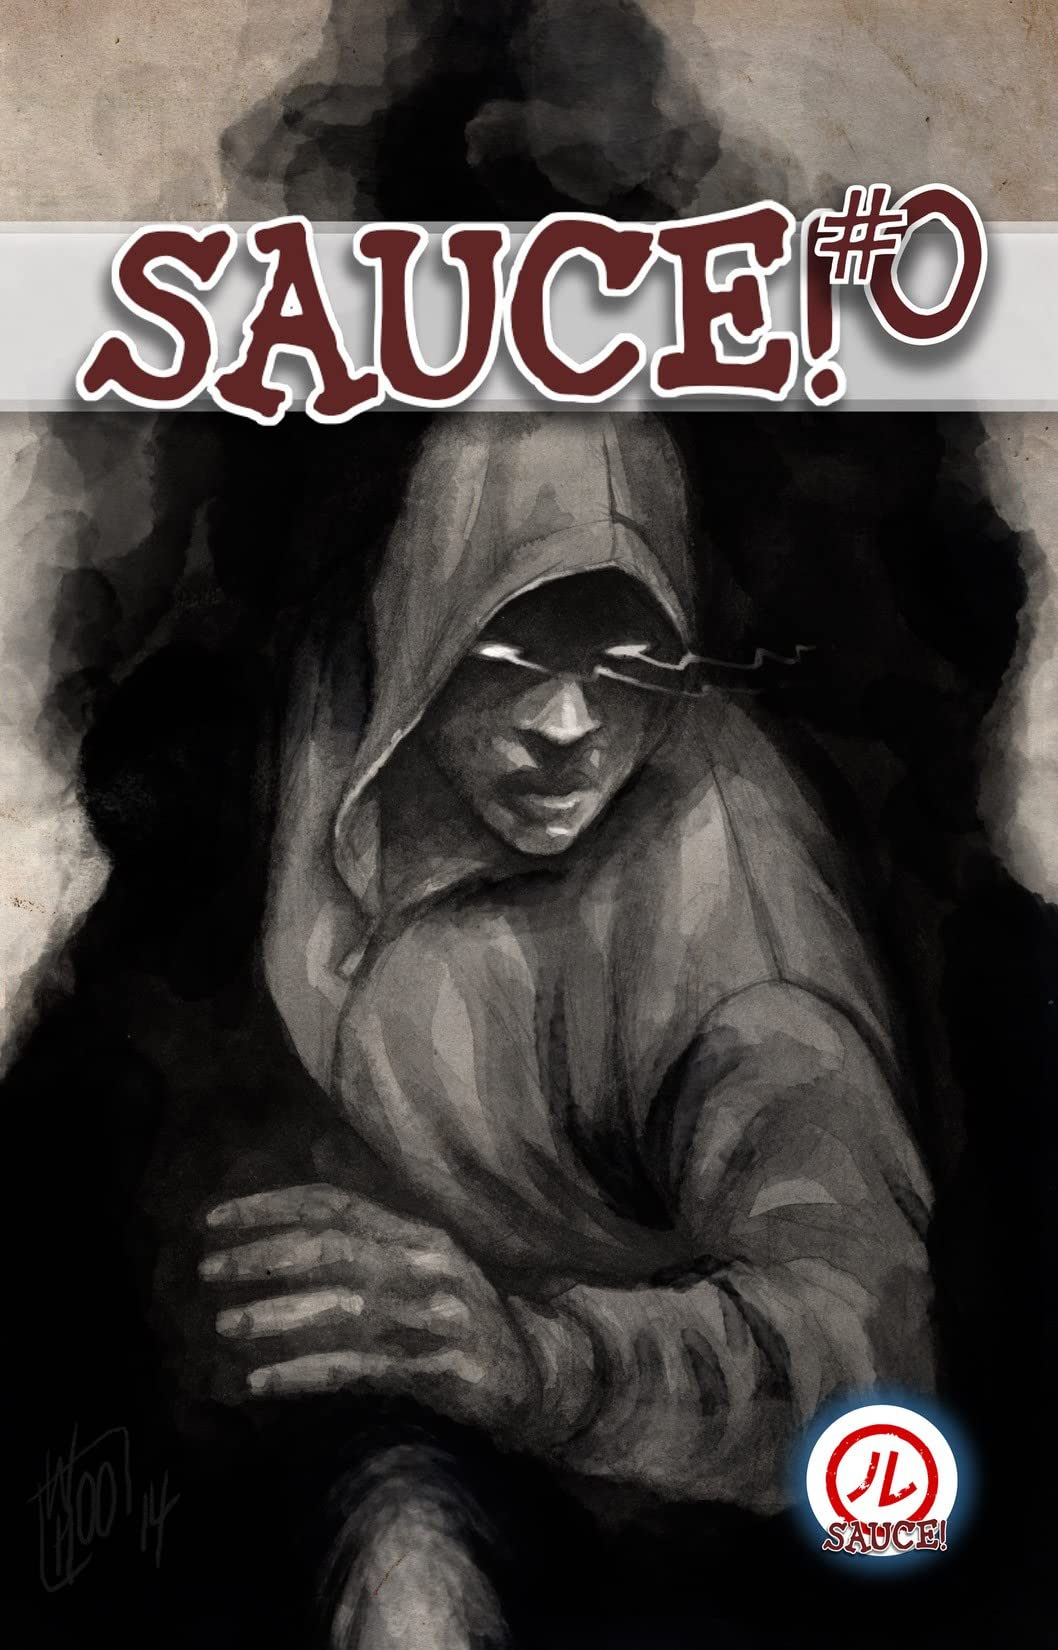 Sauce!: Early Works